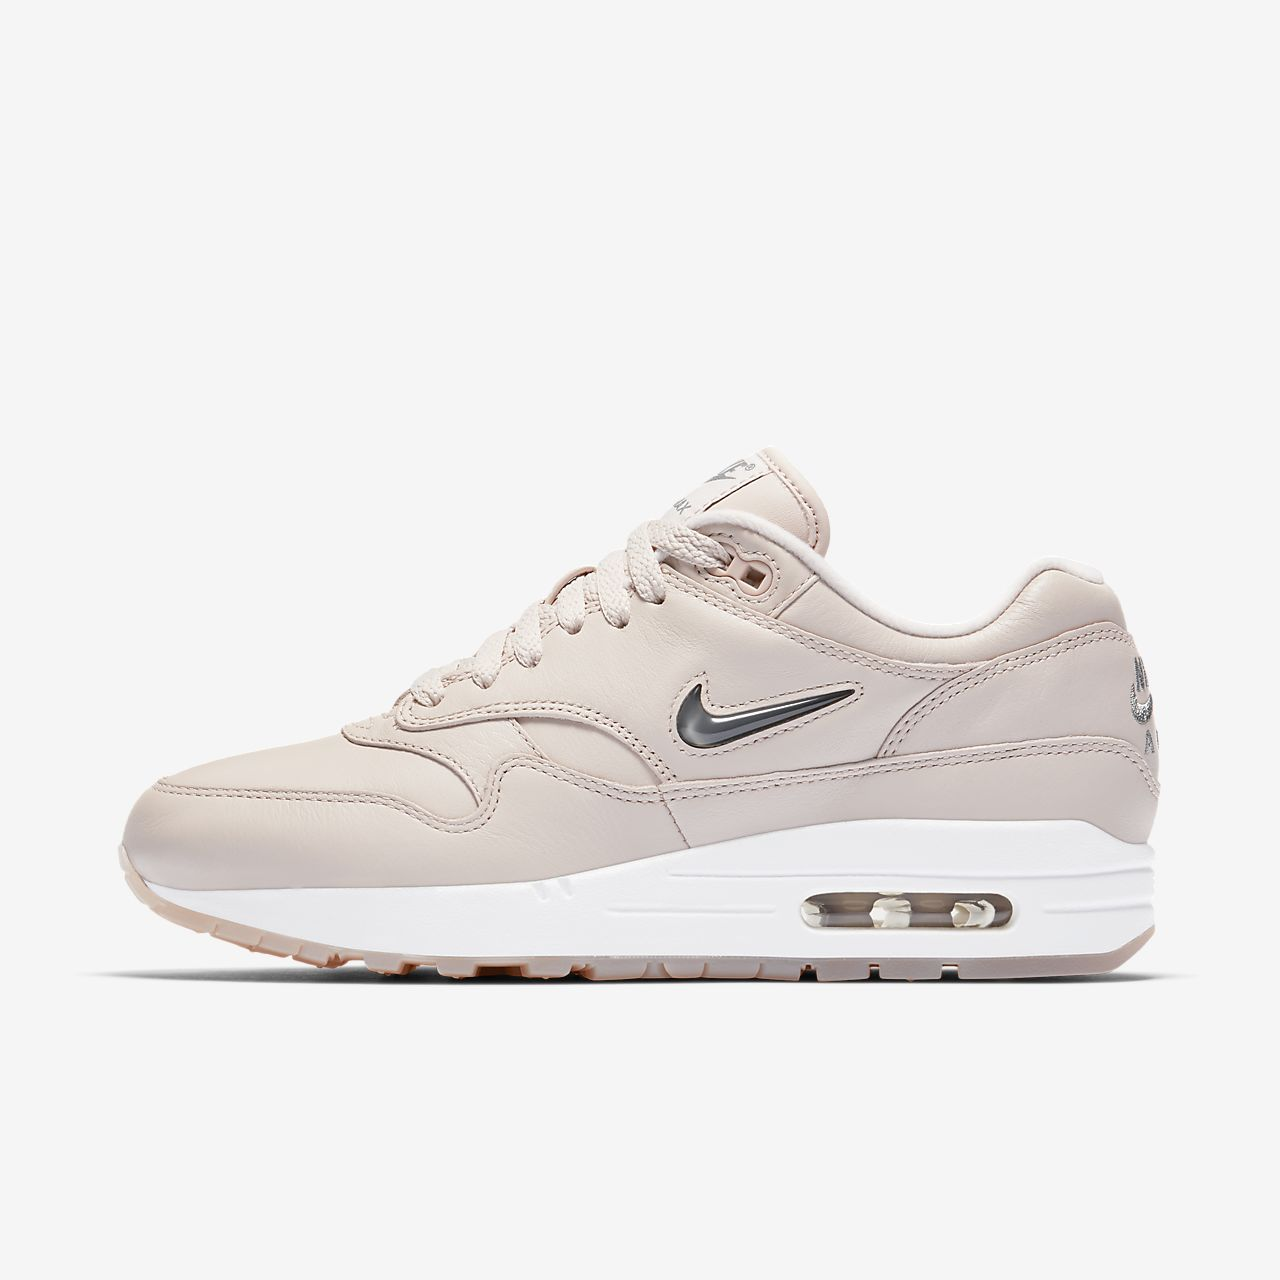 first rate 46daa 7cbbd Acquista air max donna - OFF67% sconti